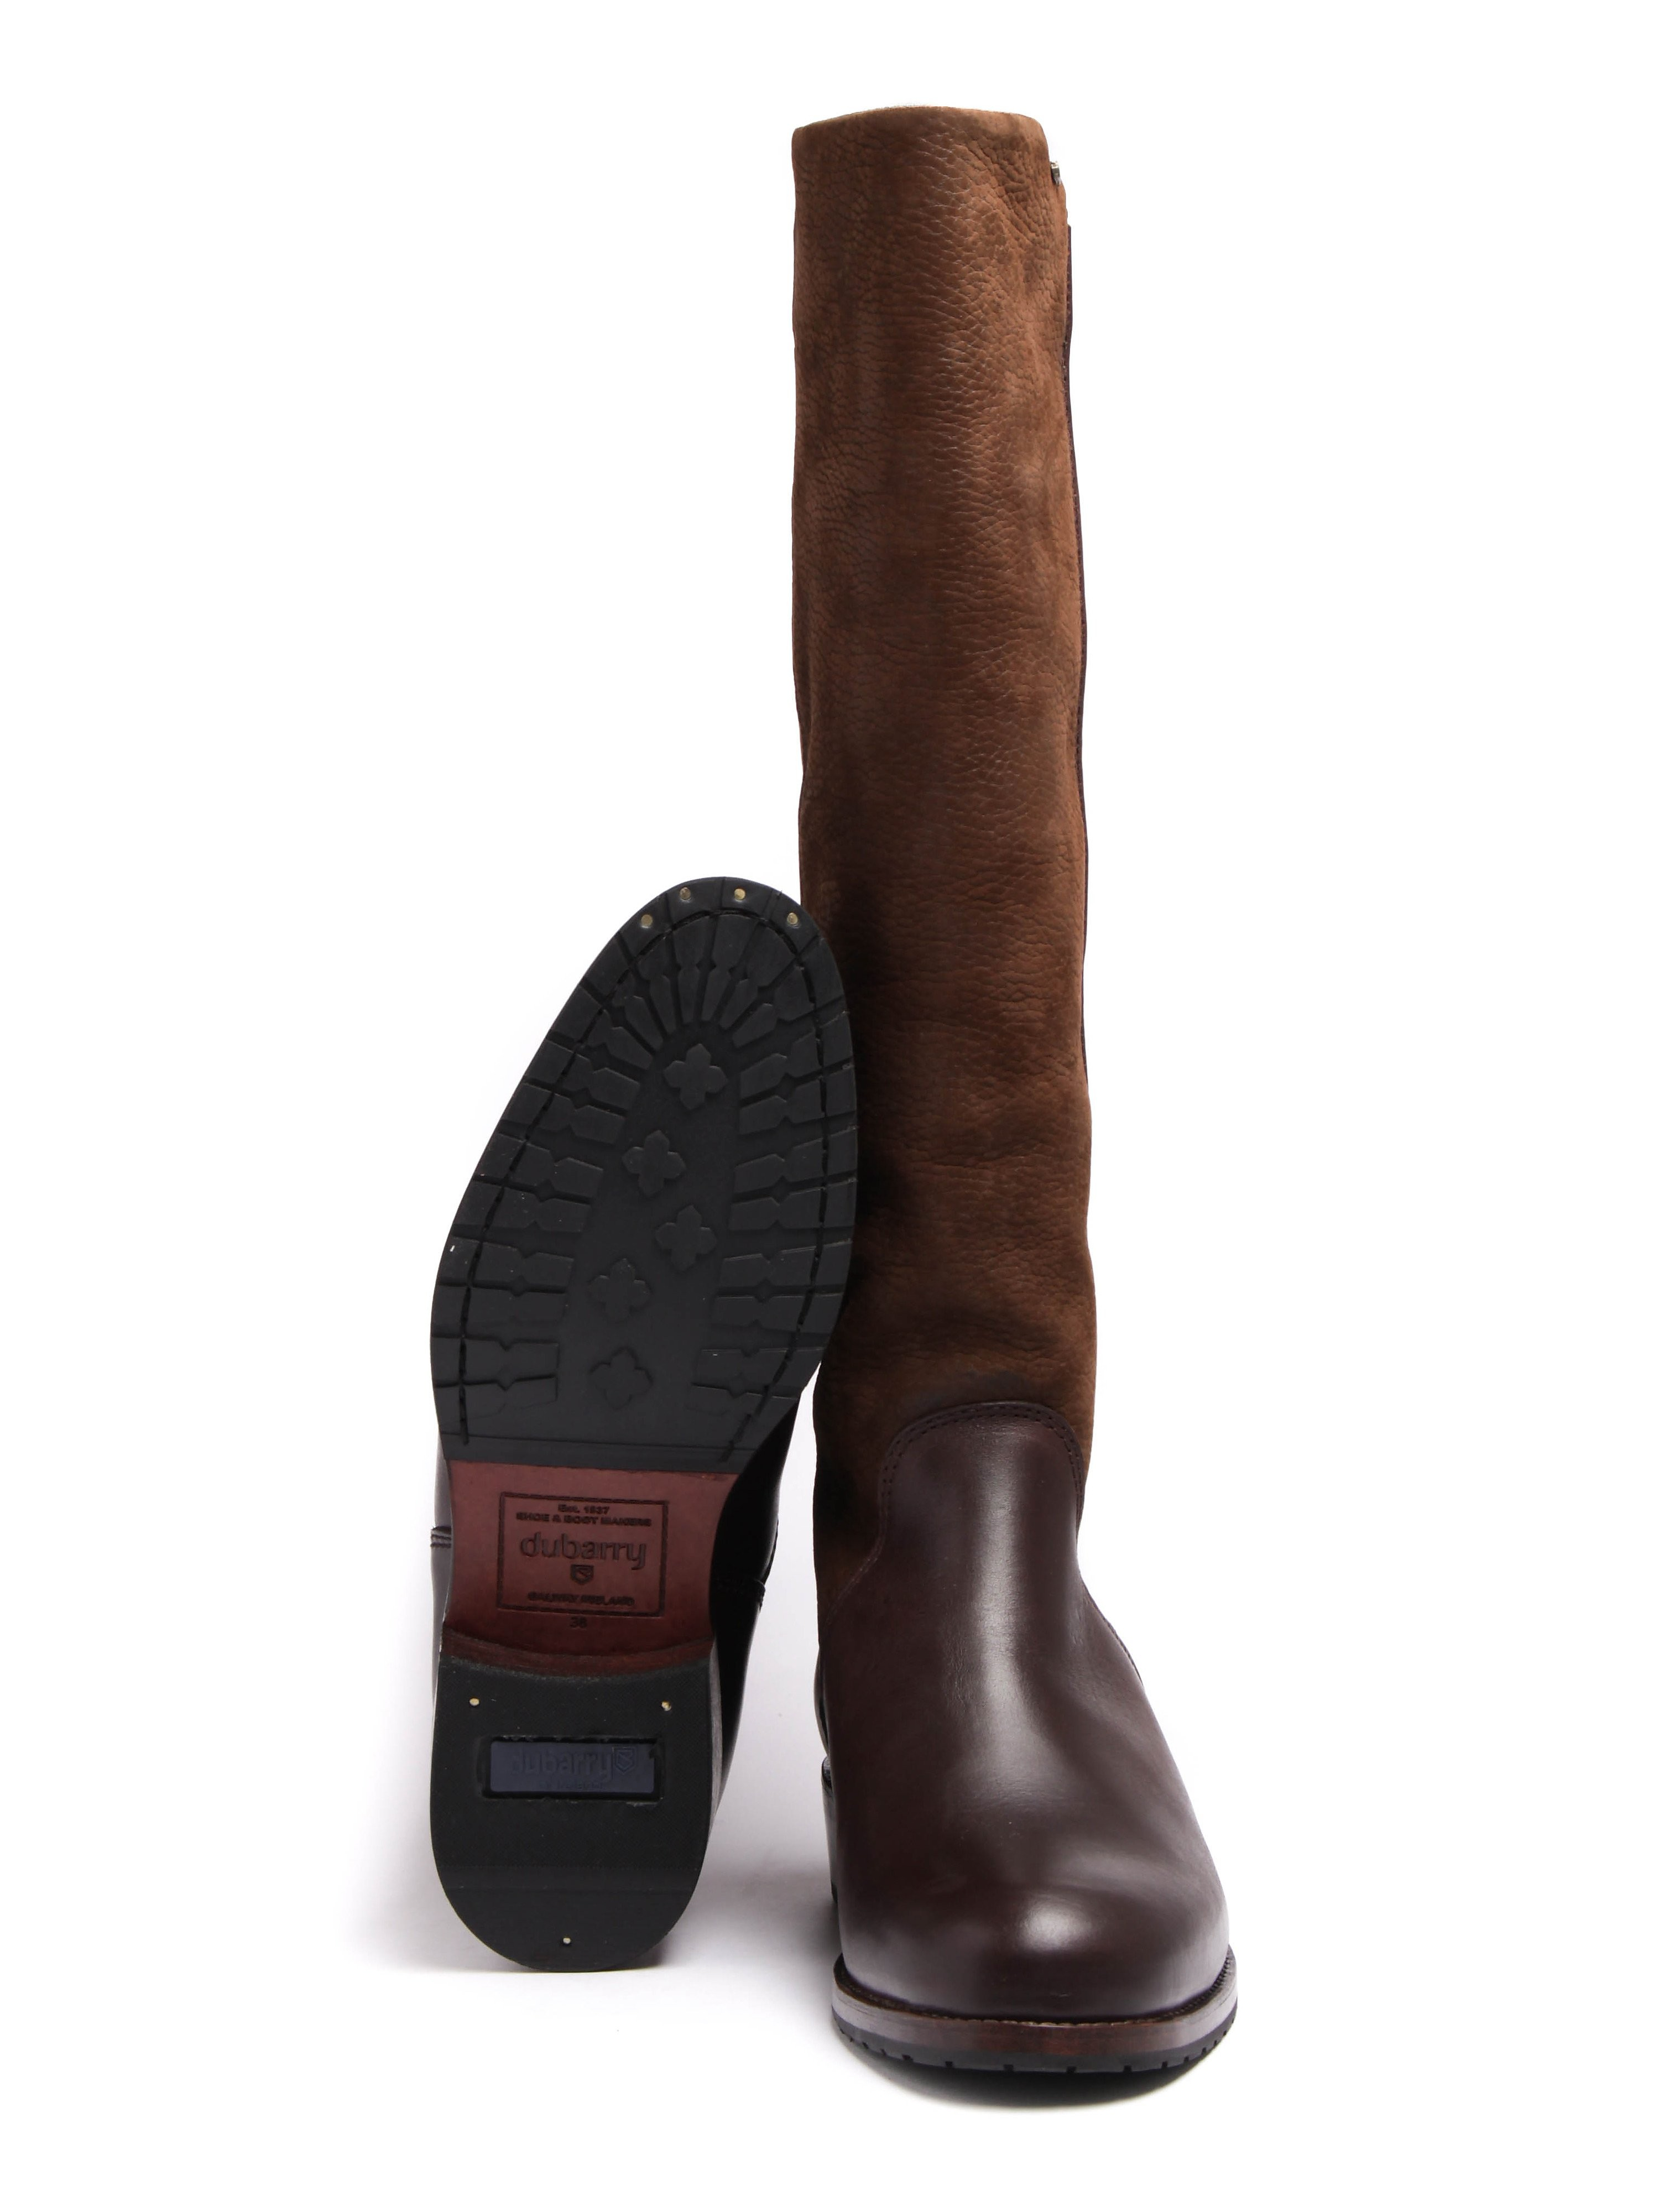 Dubarry Women's Fermoy Leather Boots - Walnut